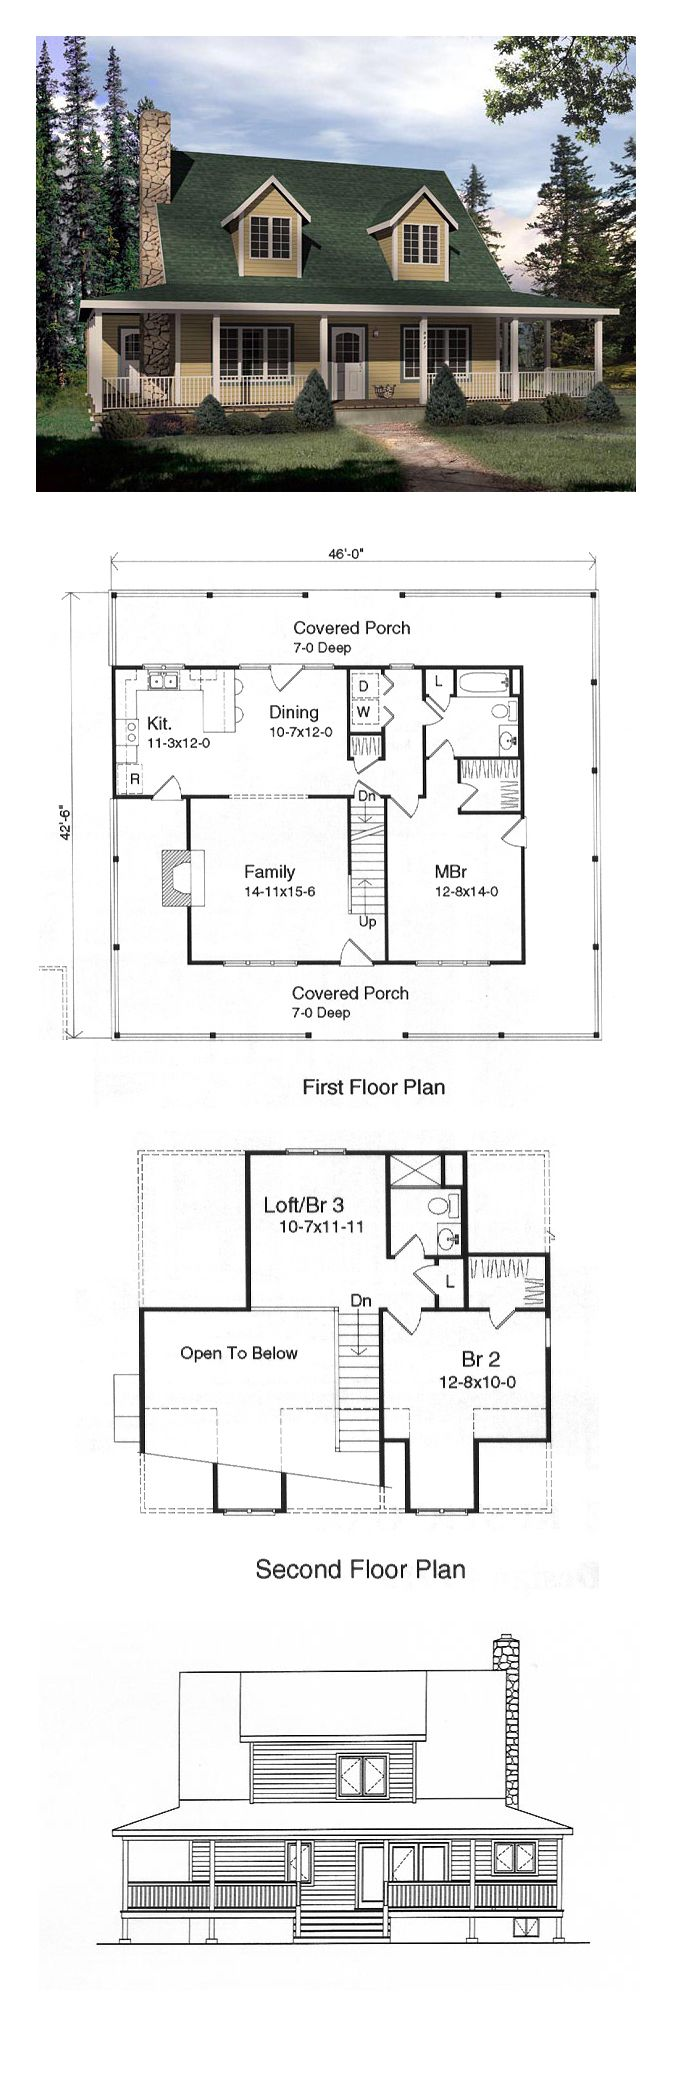 50 best cape cod house plans images on pinterest cape cod homes